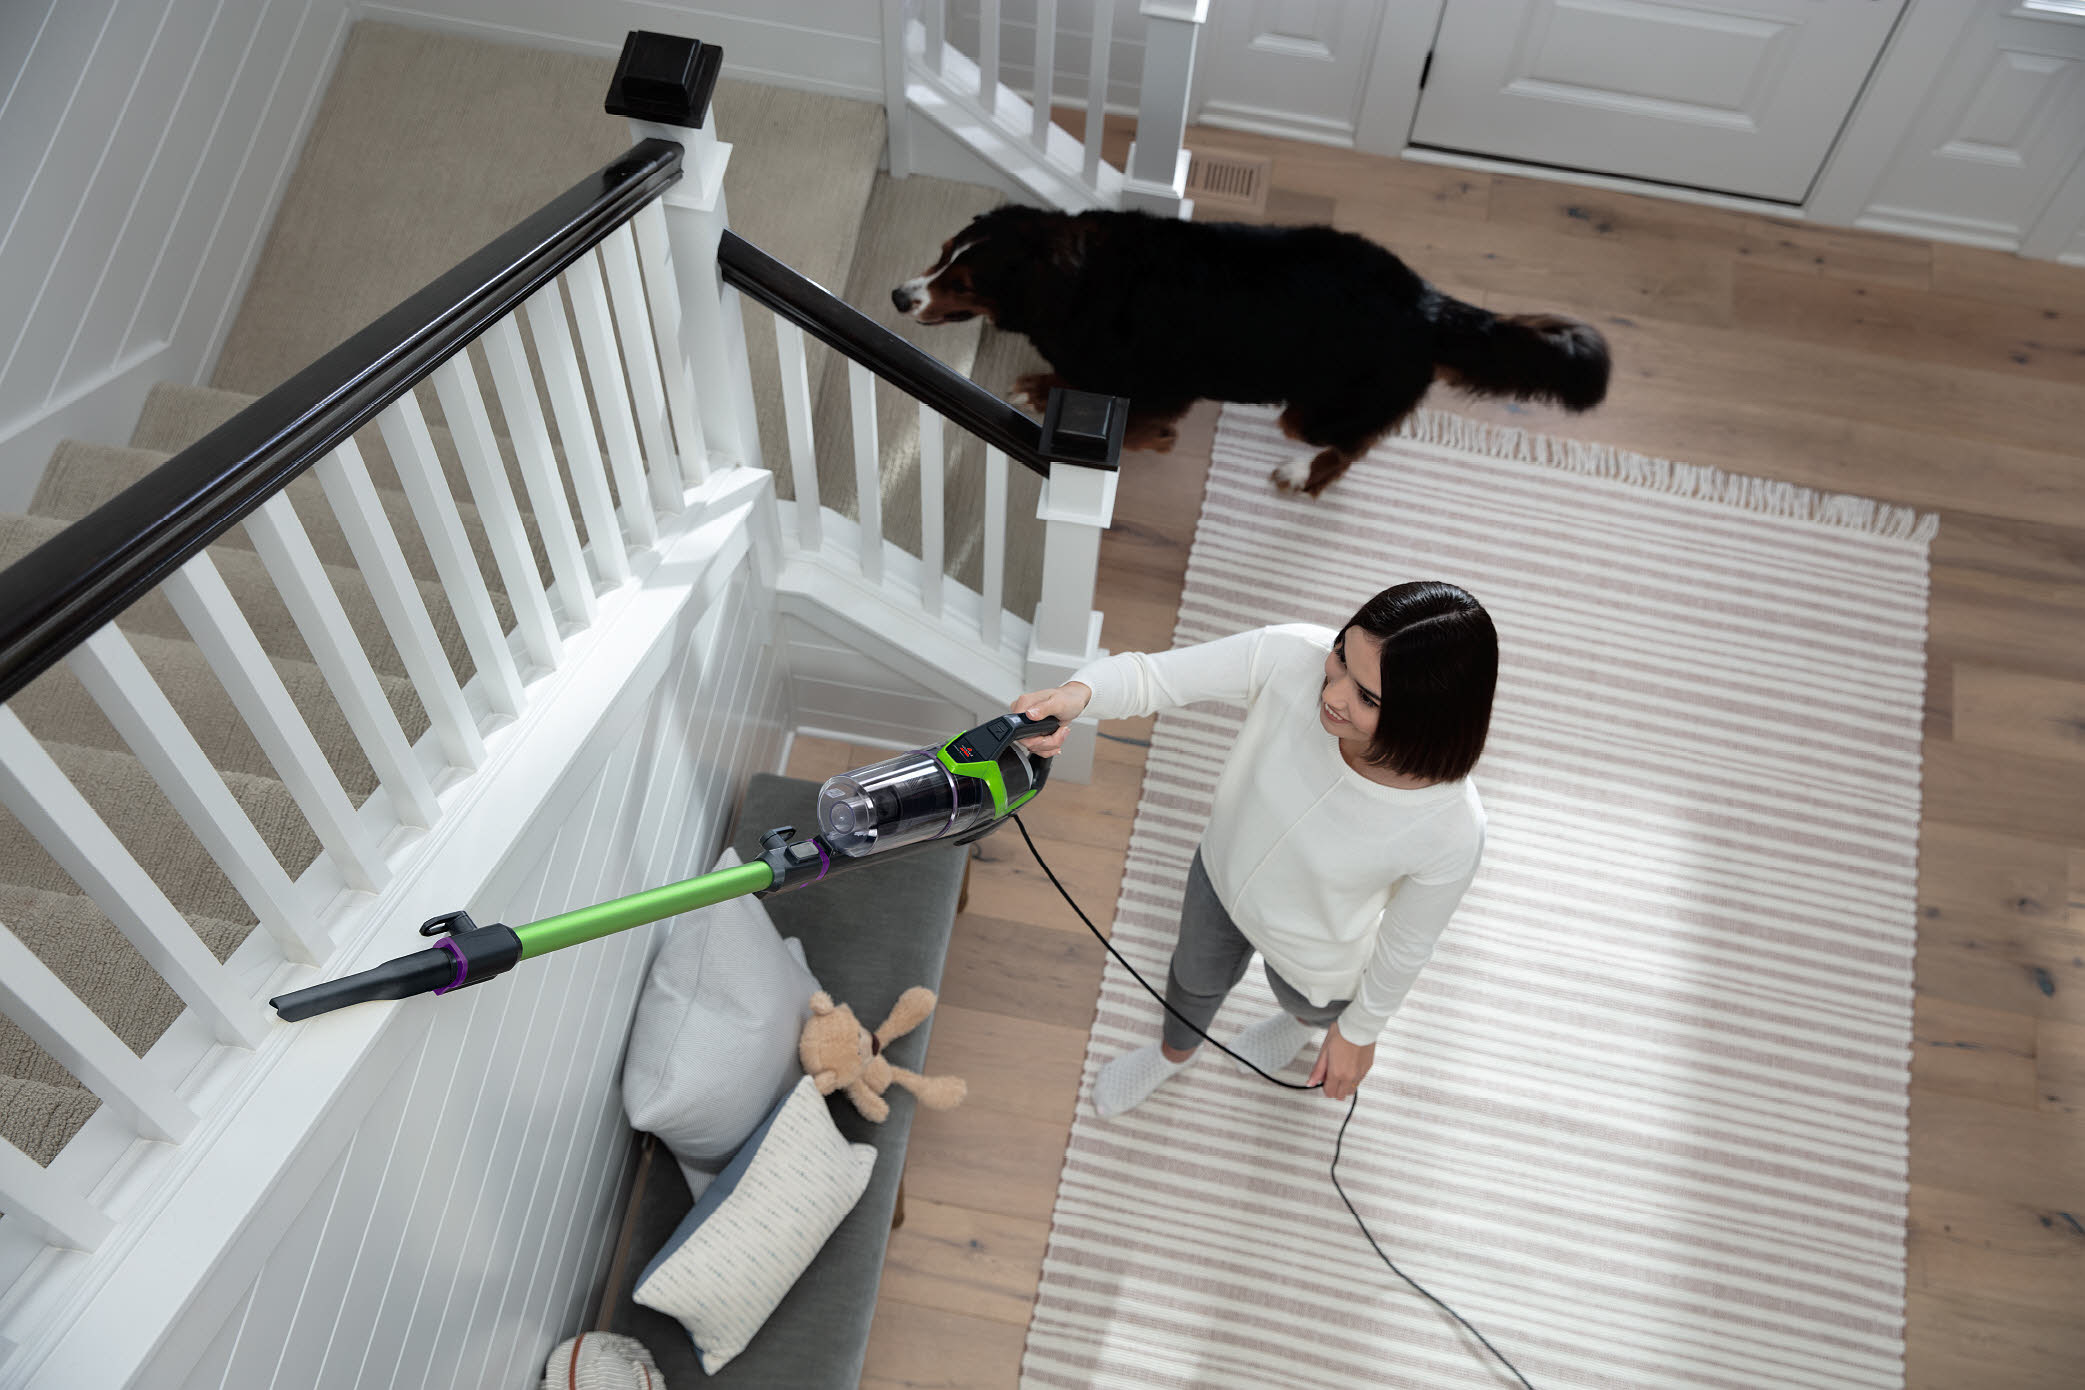 person uses bissell stick vacuum on the stairs as a dog walks behind her